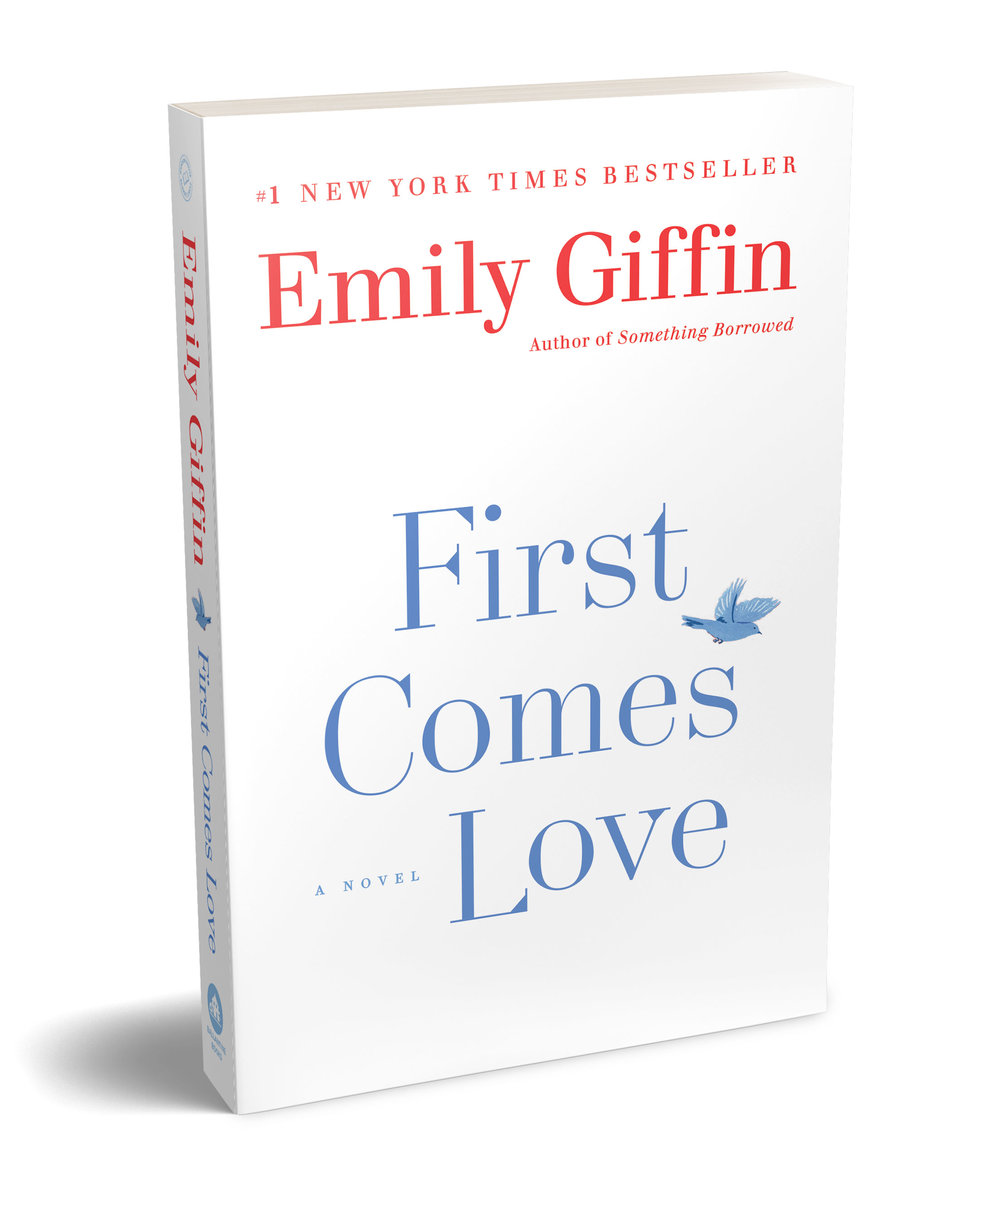 first-comes-love-paperback.jpg